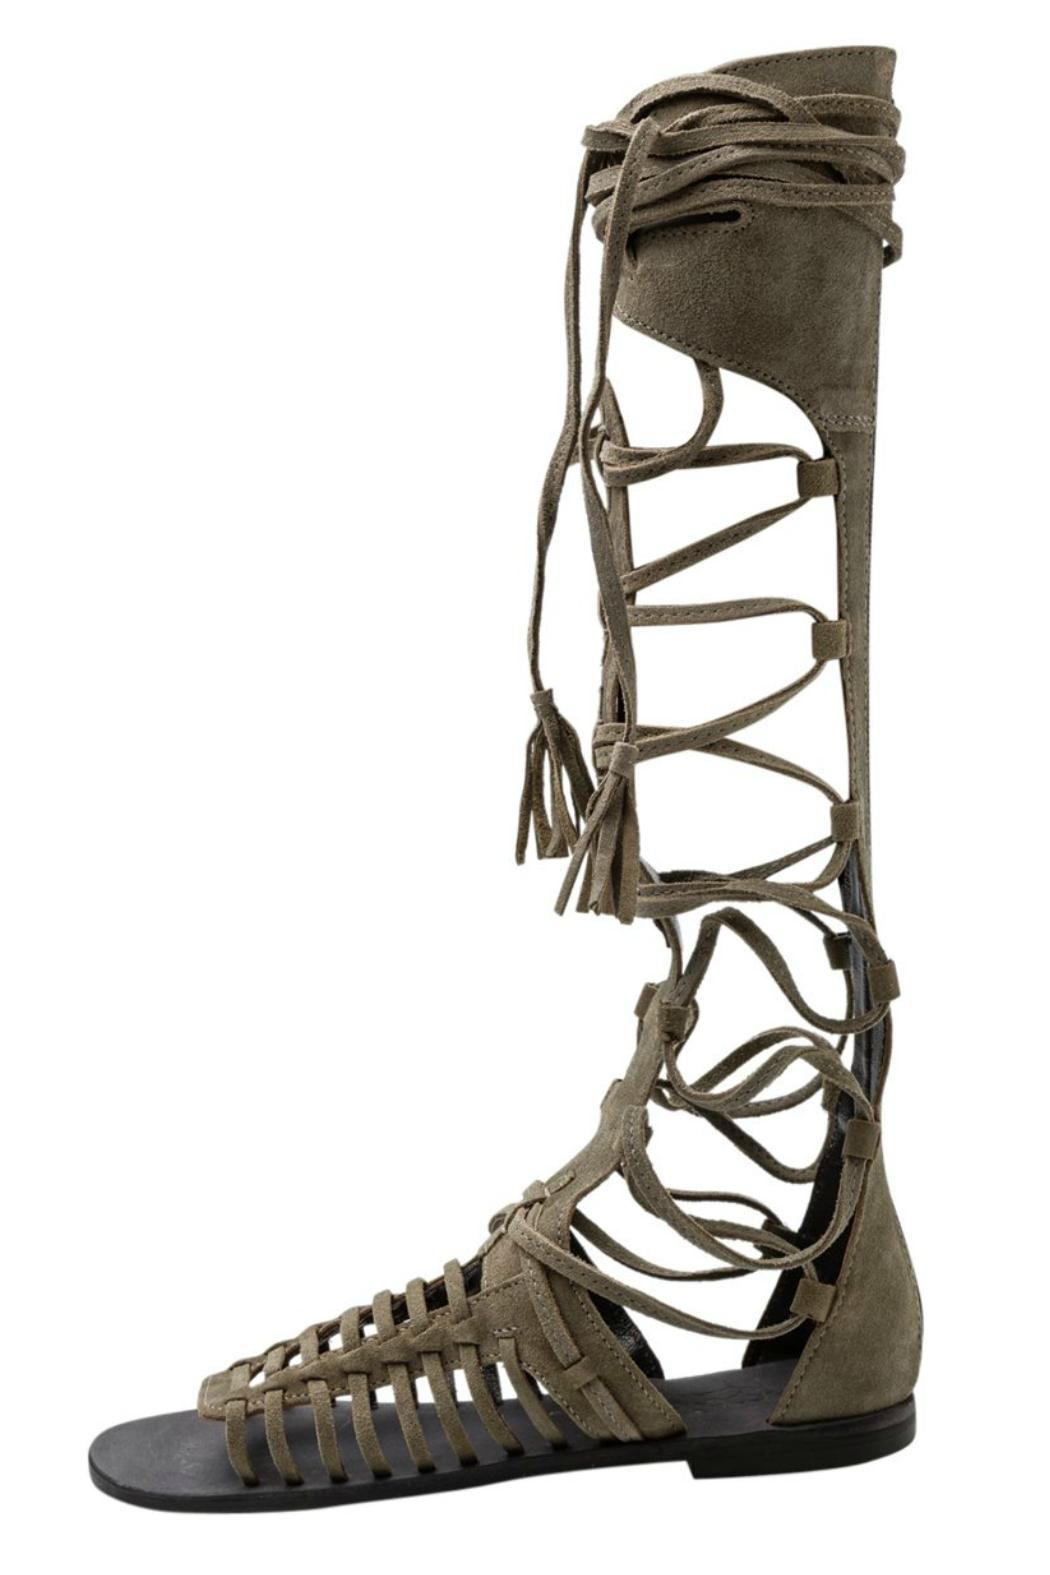 acb9f9d61d9c Free People Sunseeker Gladiator Sandal from Seattle by Mi Shoes ...